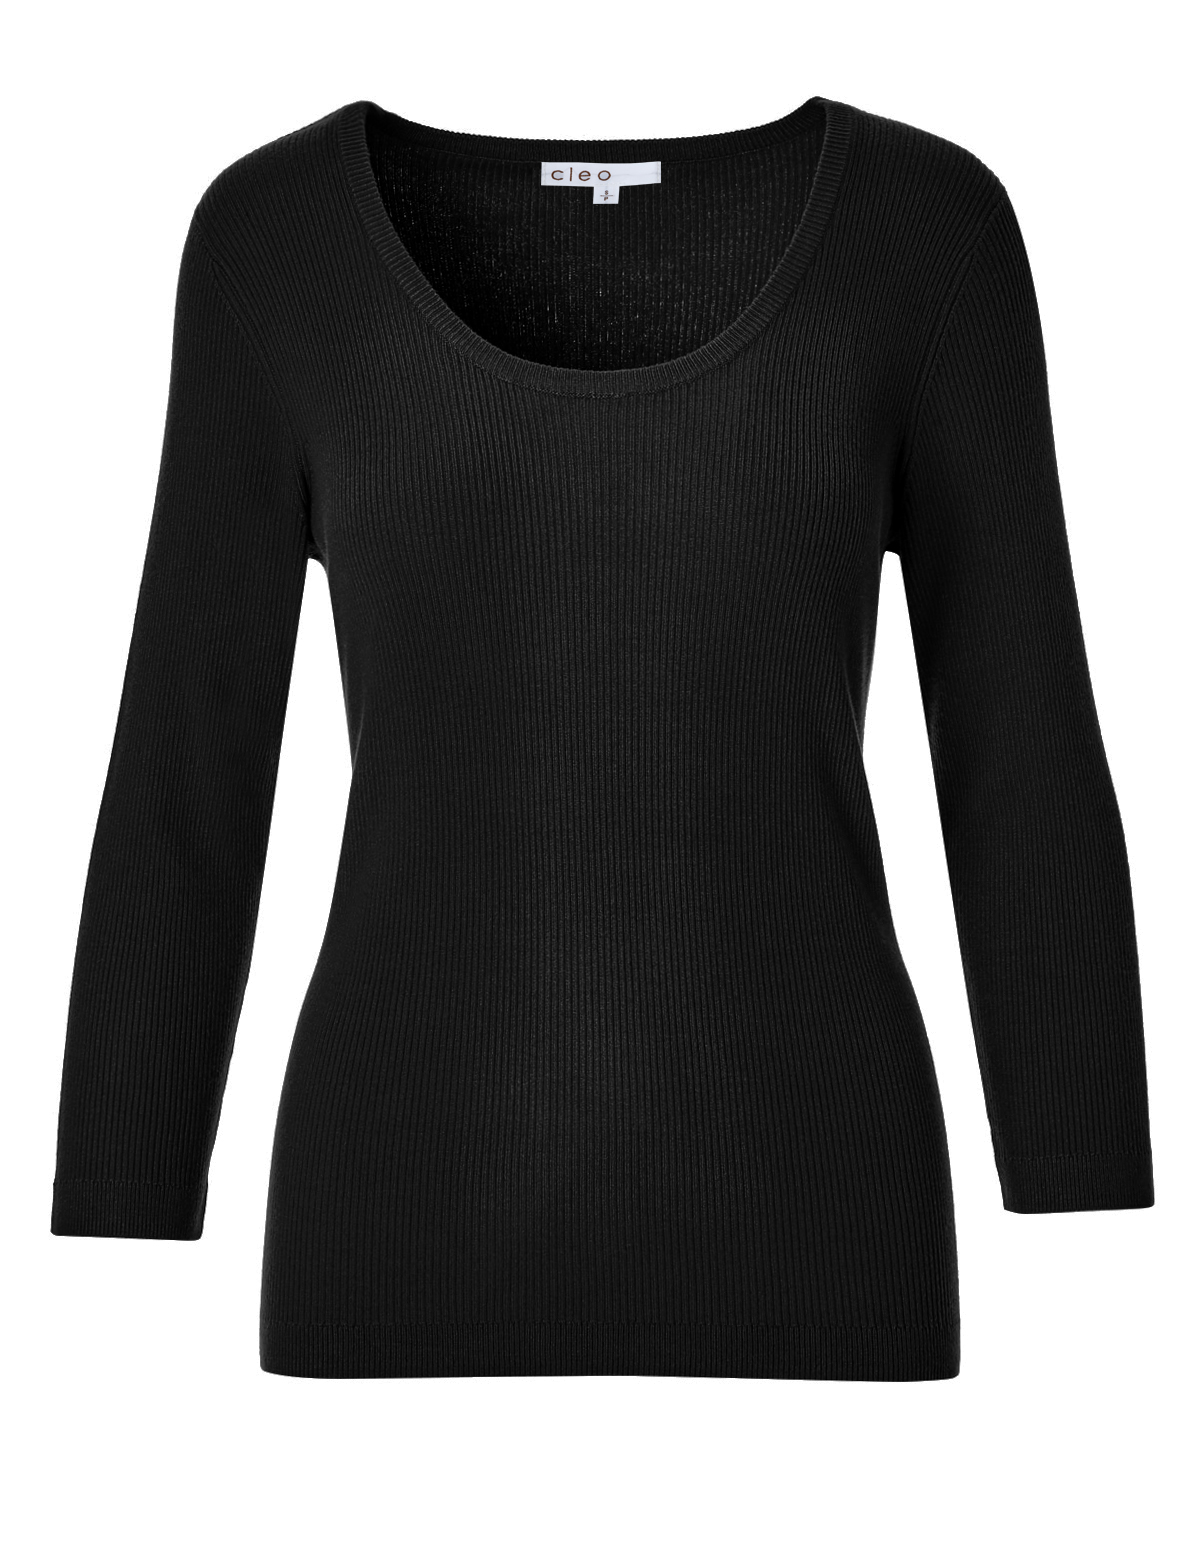 Black Ribbed Pullover Sweater | Cleo